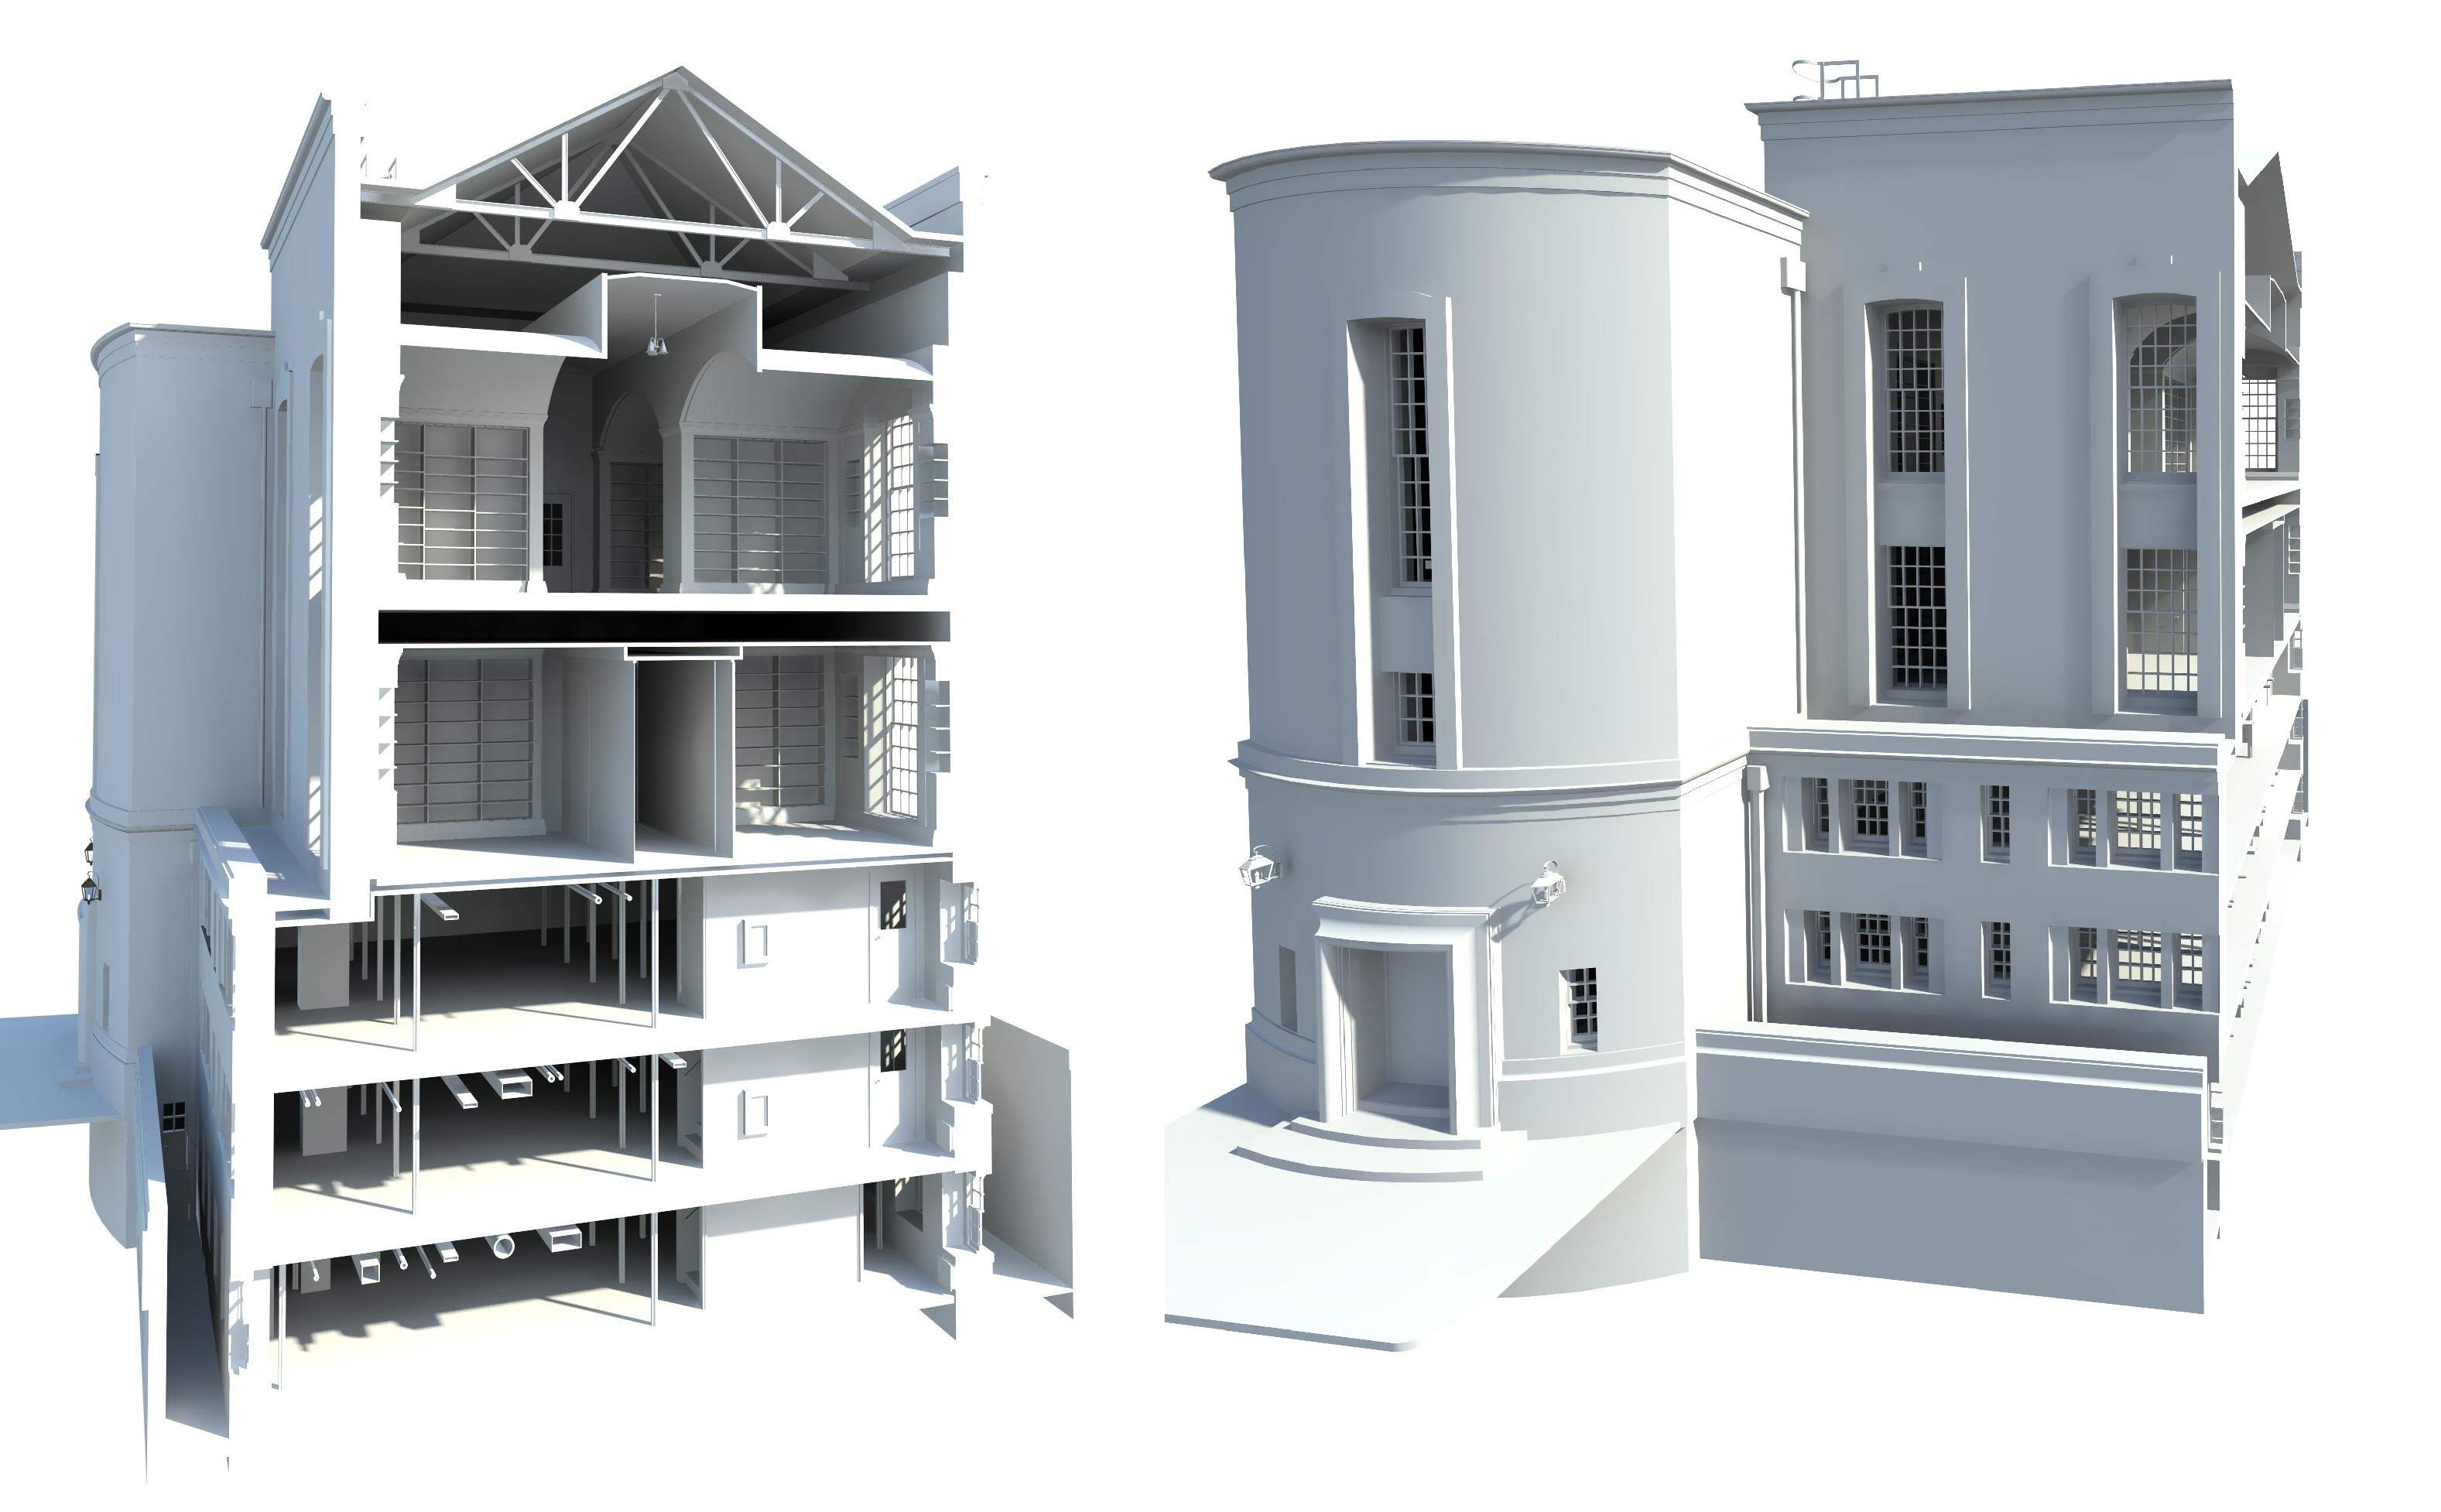 Level 4 Detailed Architectural Model